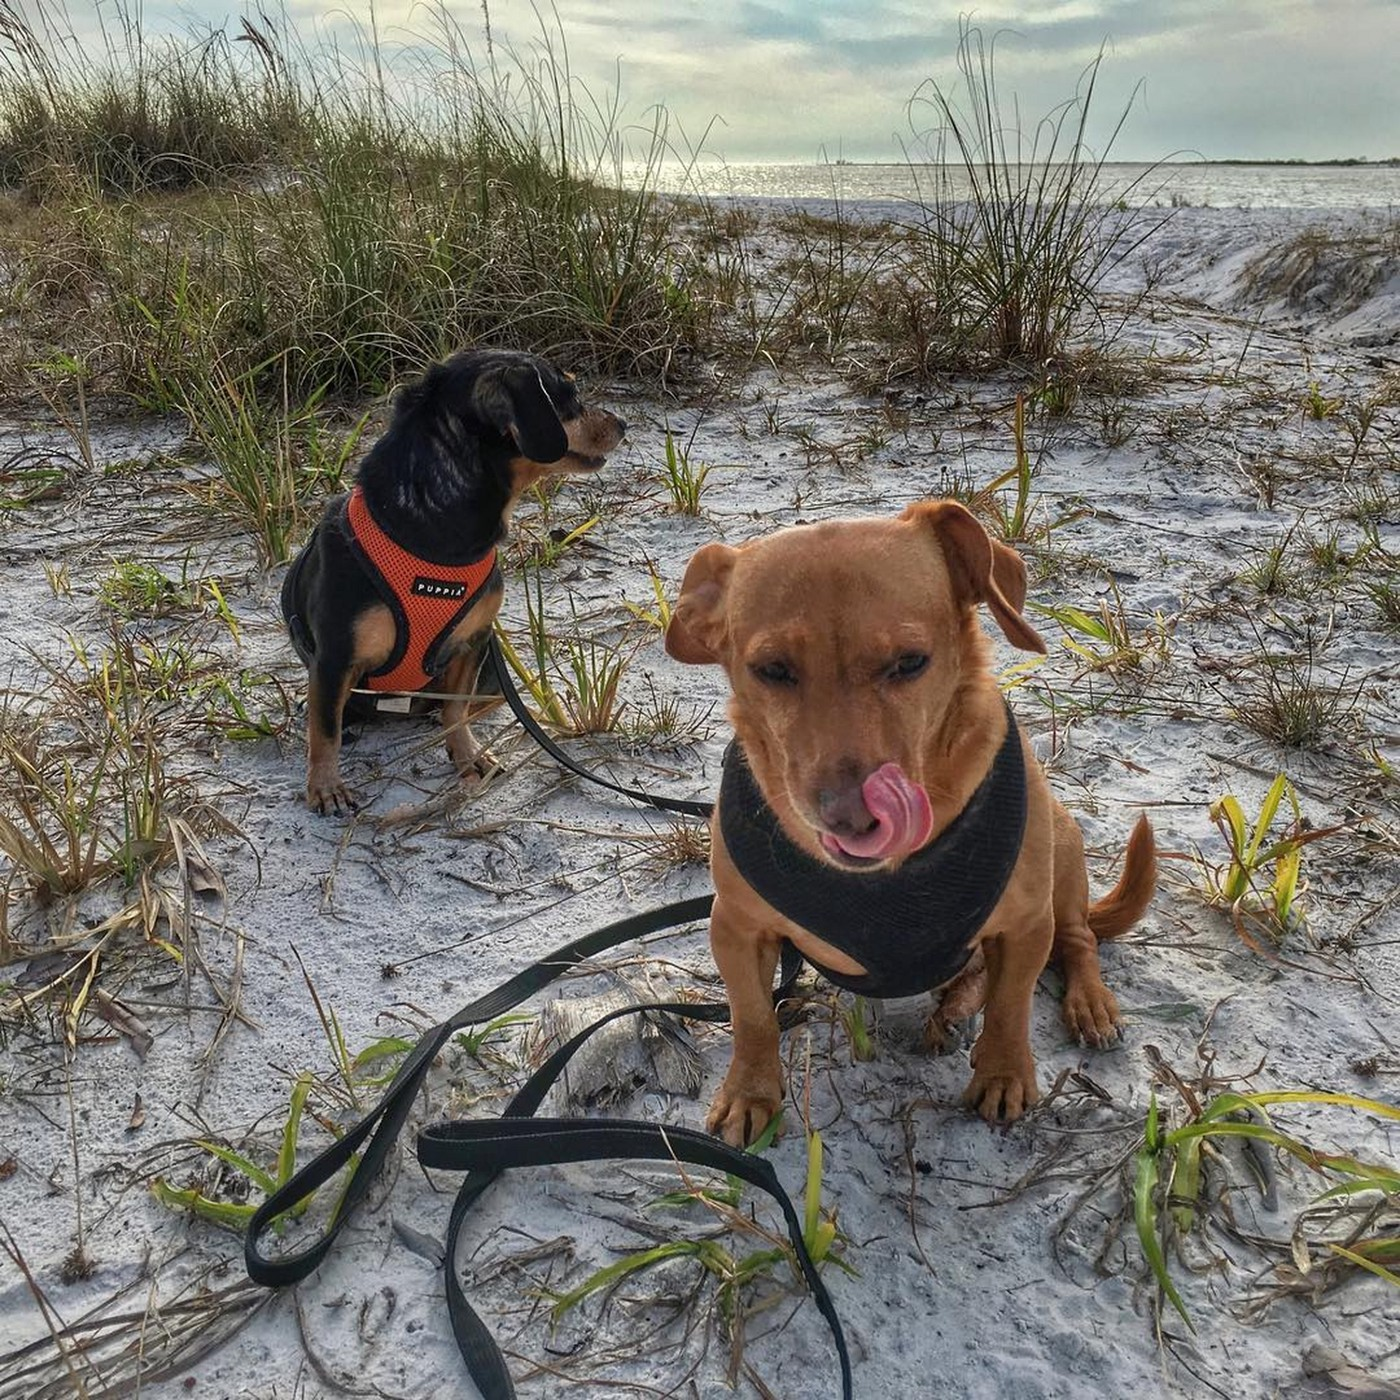 The well-named Dog Beach is located in Bonita Beach, near Fort Myers, FL.